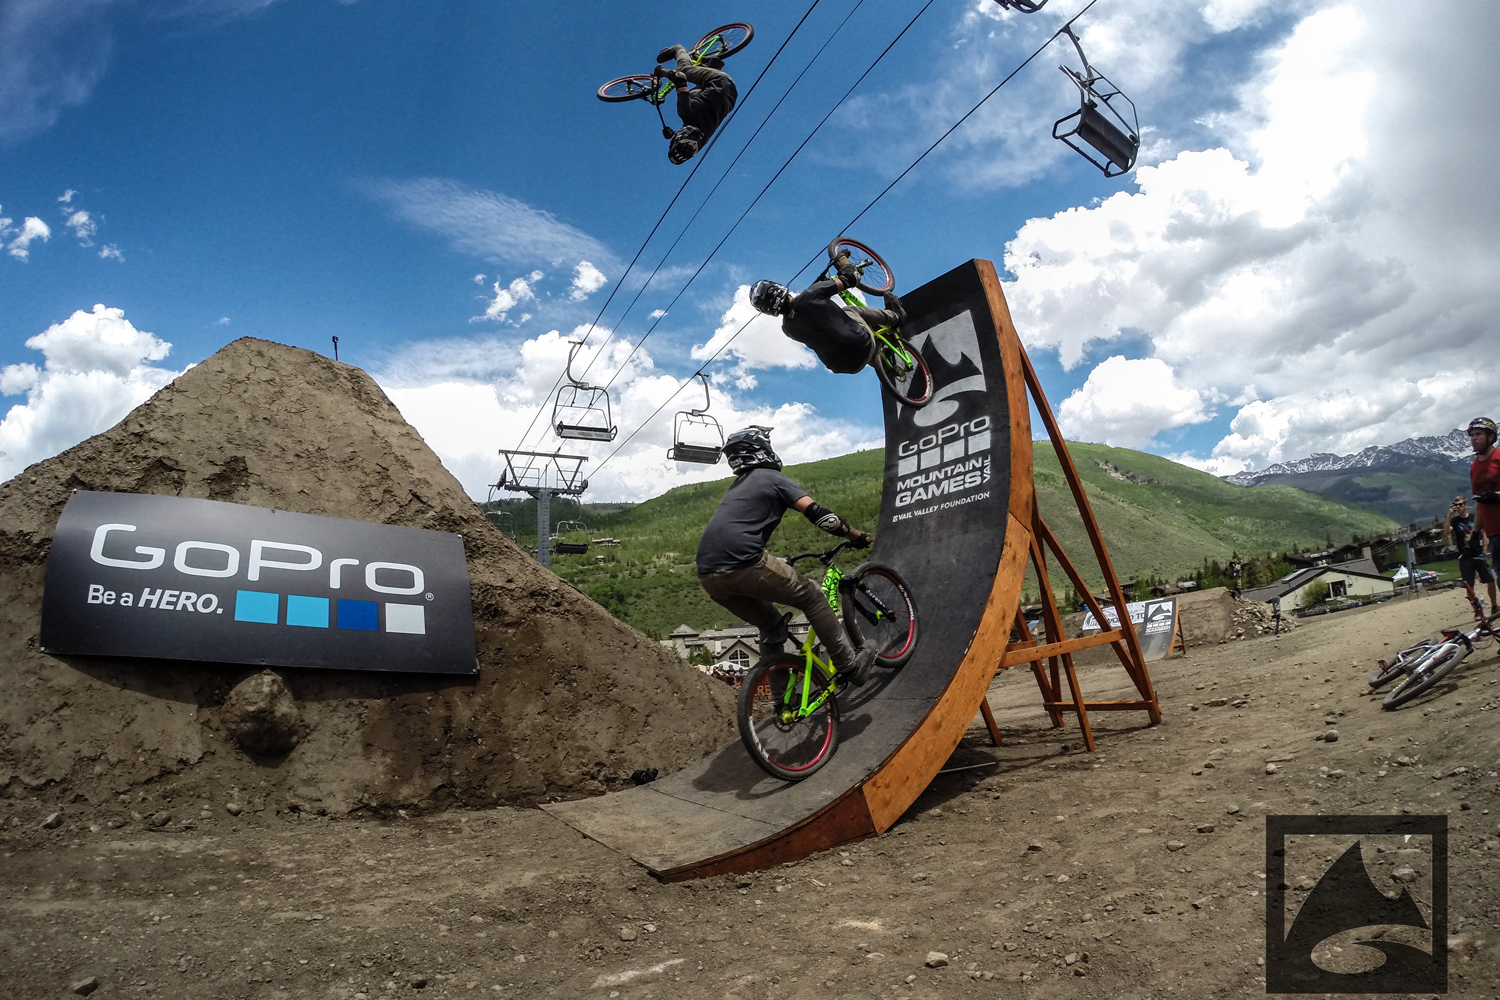 Bikers took on high-flying ramps at the Slopestyle event, which featured earthworks of gap jumps, berms and spines for the competitors to show off their tricks and battle for the $10,000 grand prize.